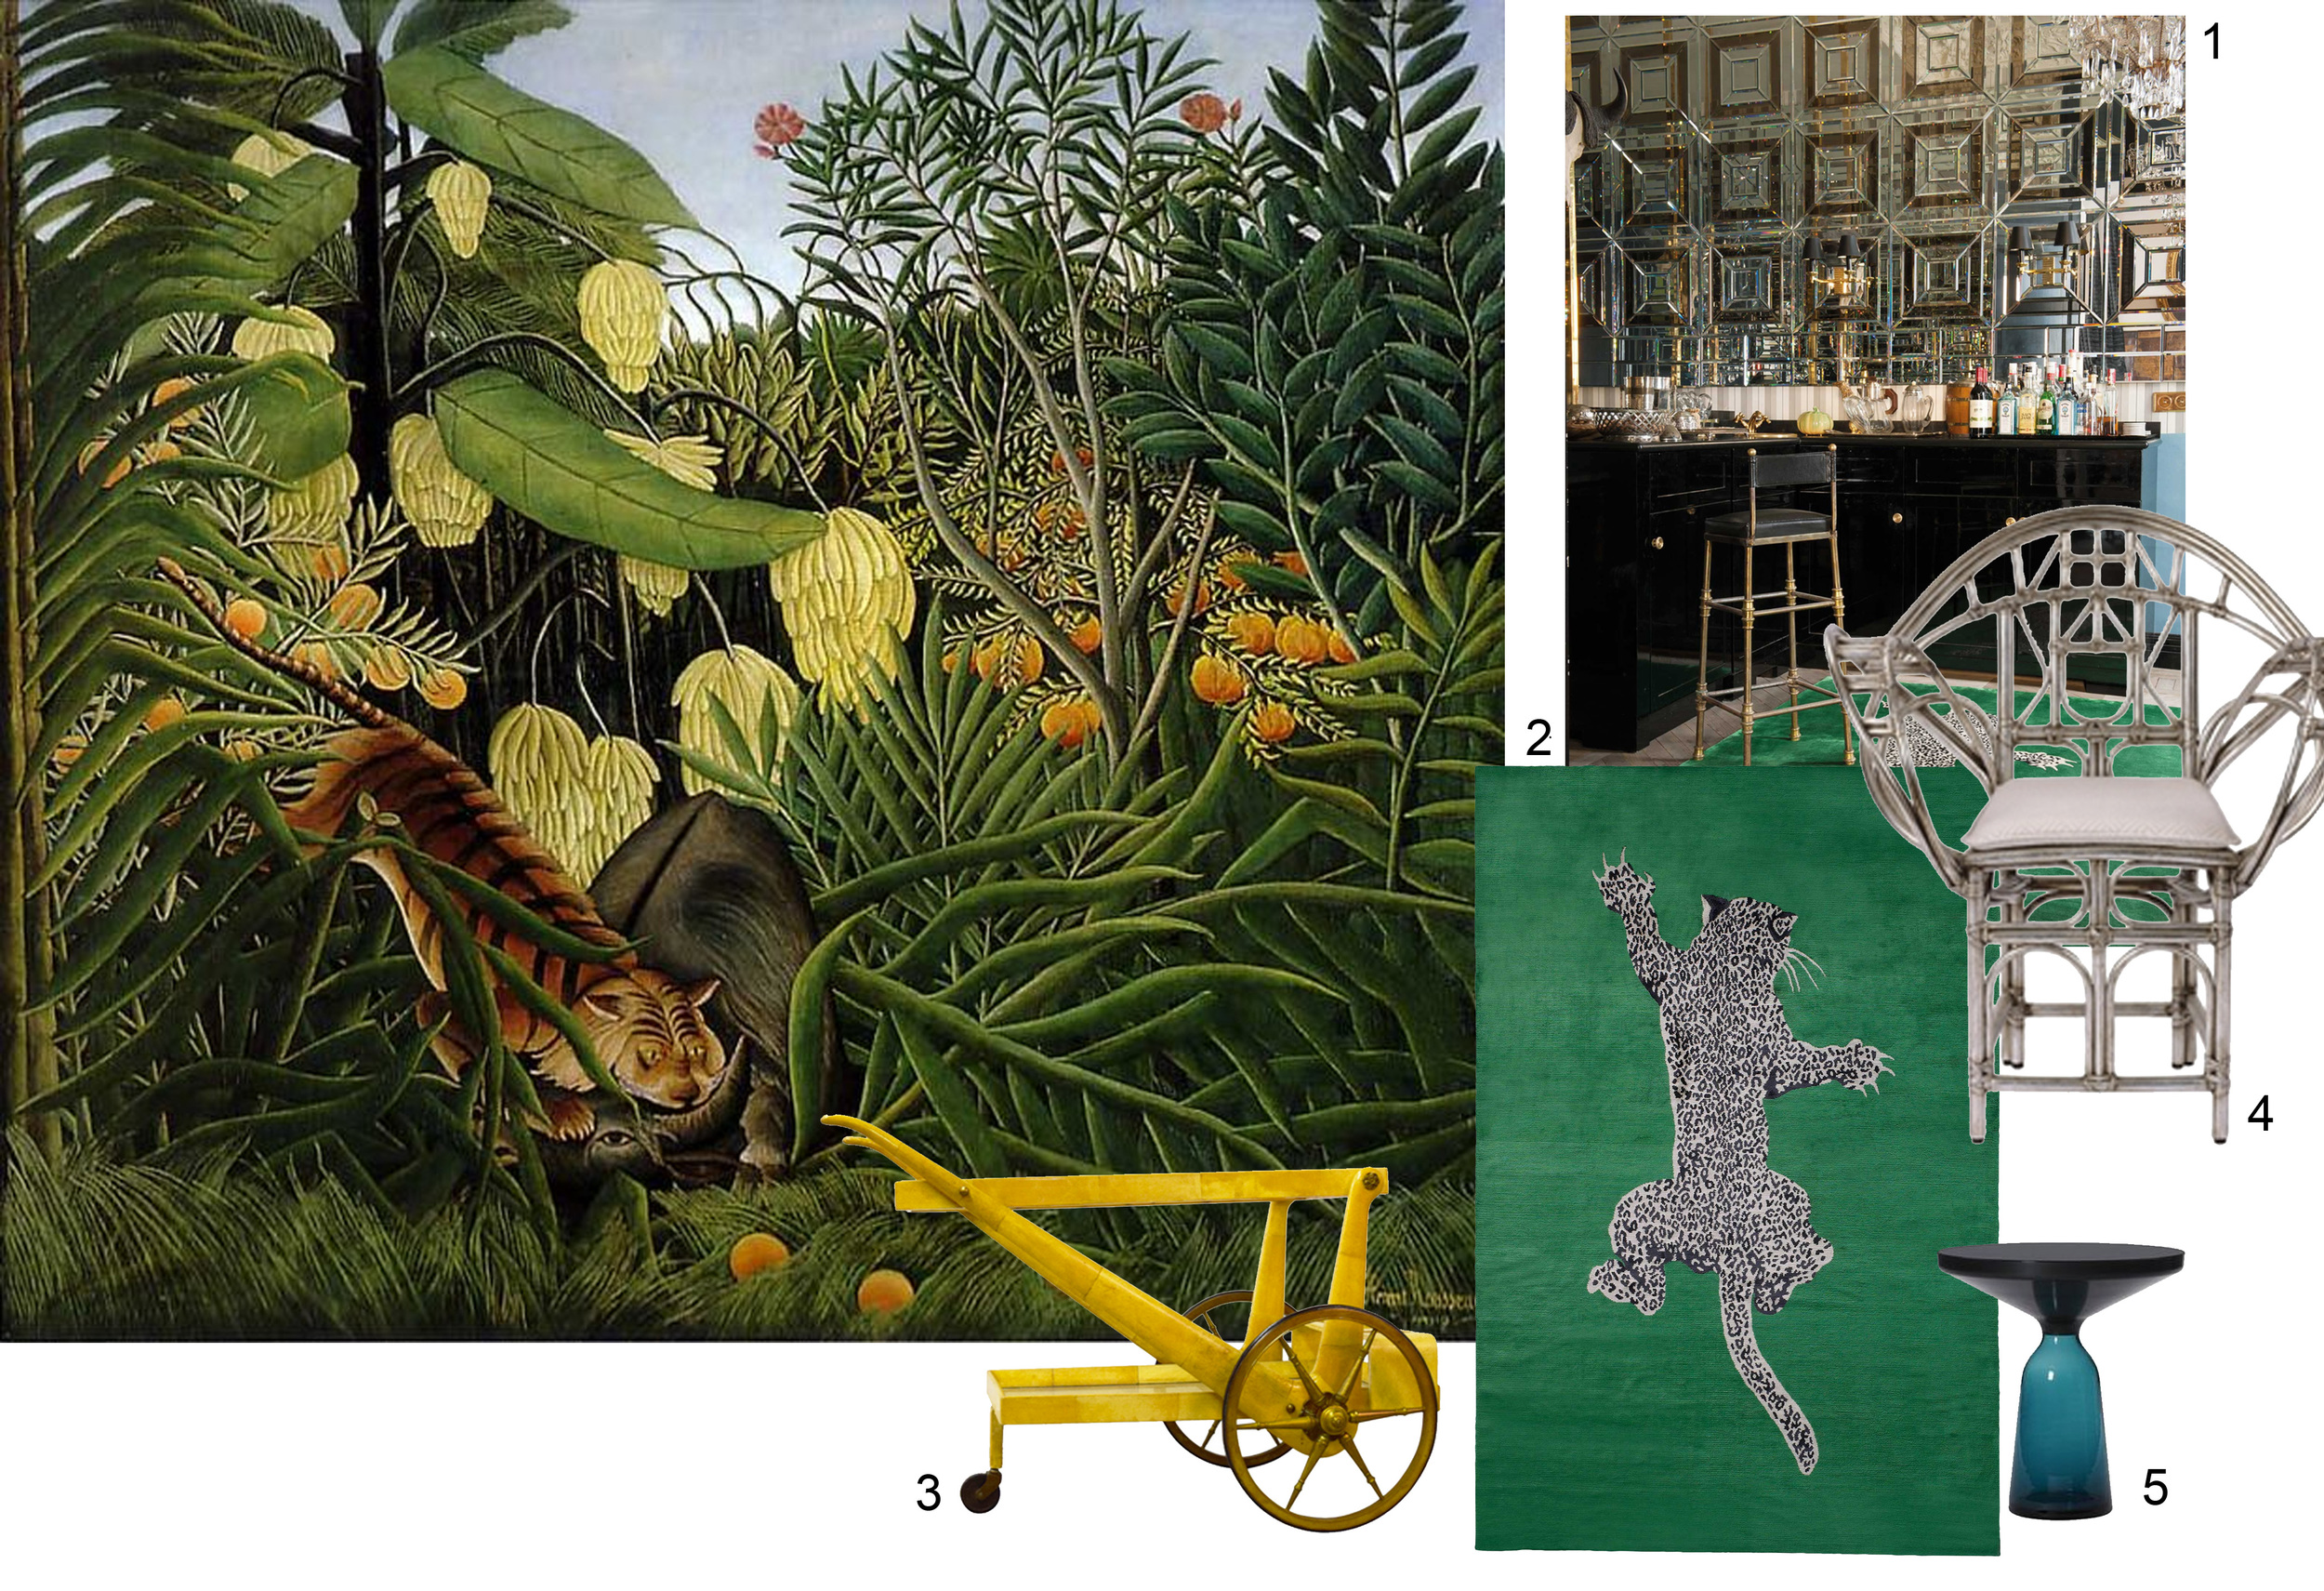 Painting Henri Rousseau: Fight between a Tiger and a Buffalo 1908 - 1 -2The Rugcompany - 3. 1stdibs - 4. McGuire - 5.ClassiCon